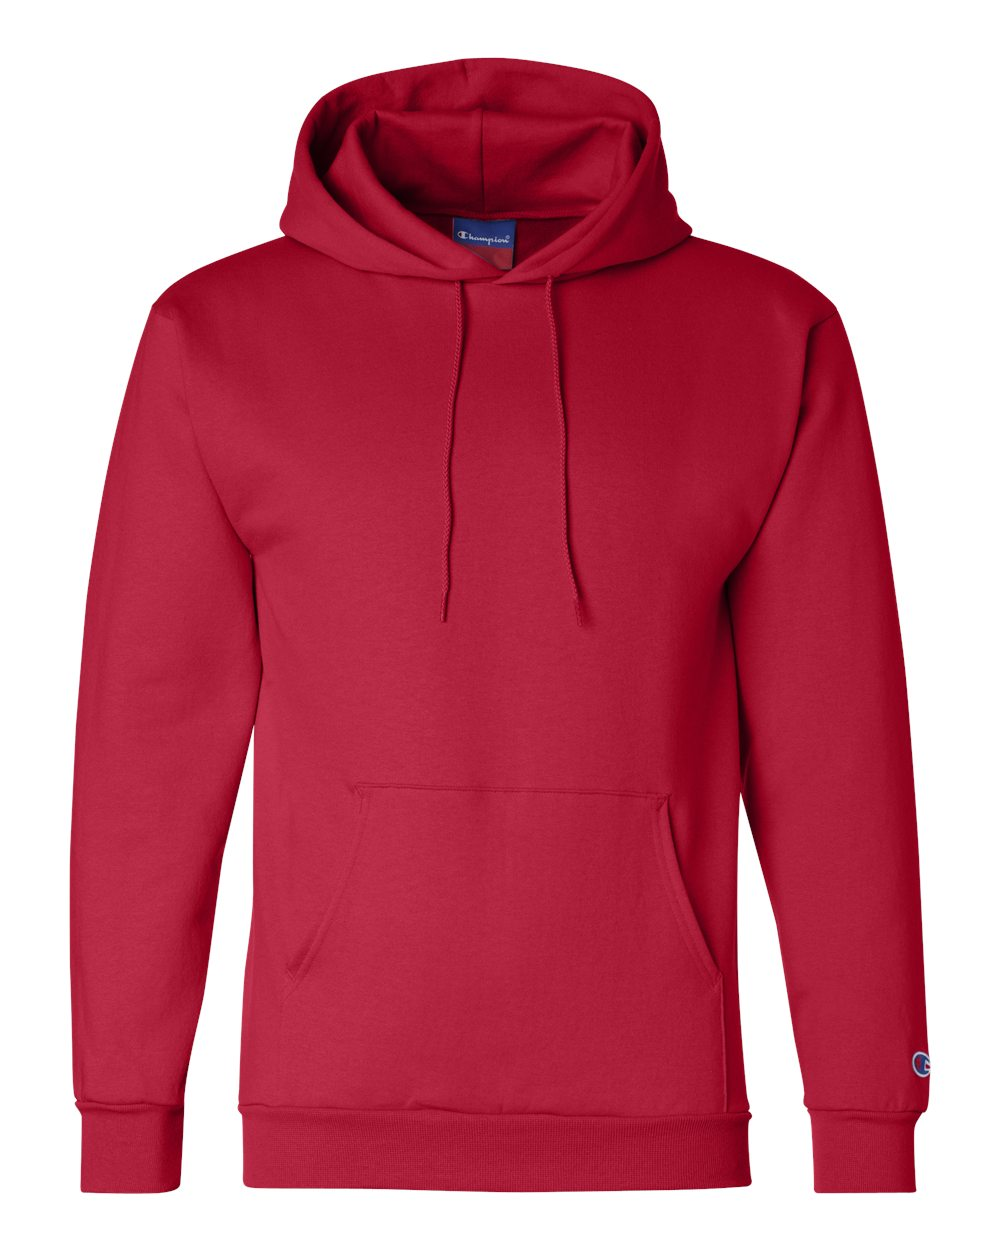 Champion-Mens-Double-Dry-Eco-Hooded-Sweatshirt-Hoodie-Pullover-S700-up-to-3XL miniature 39